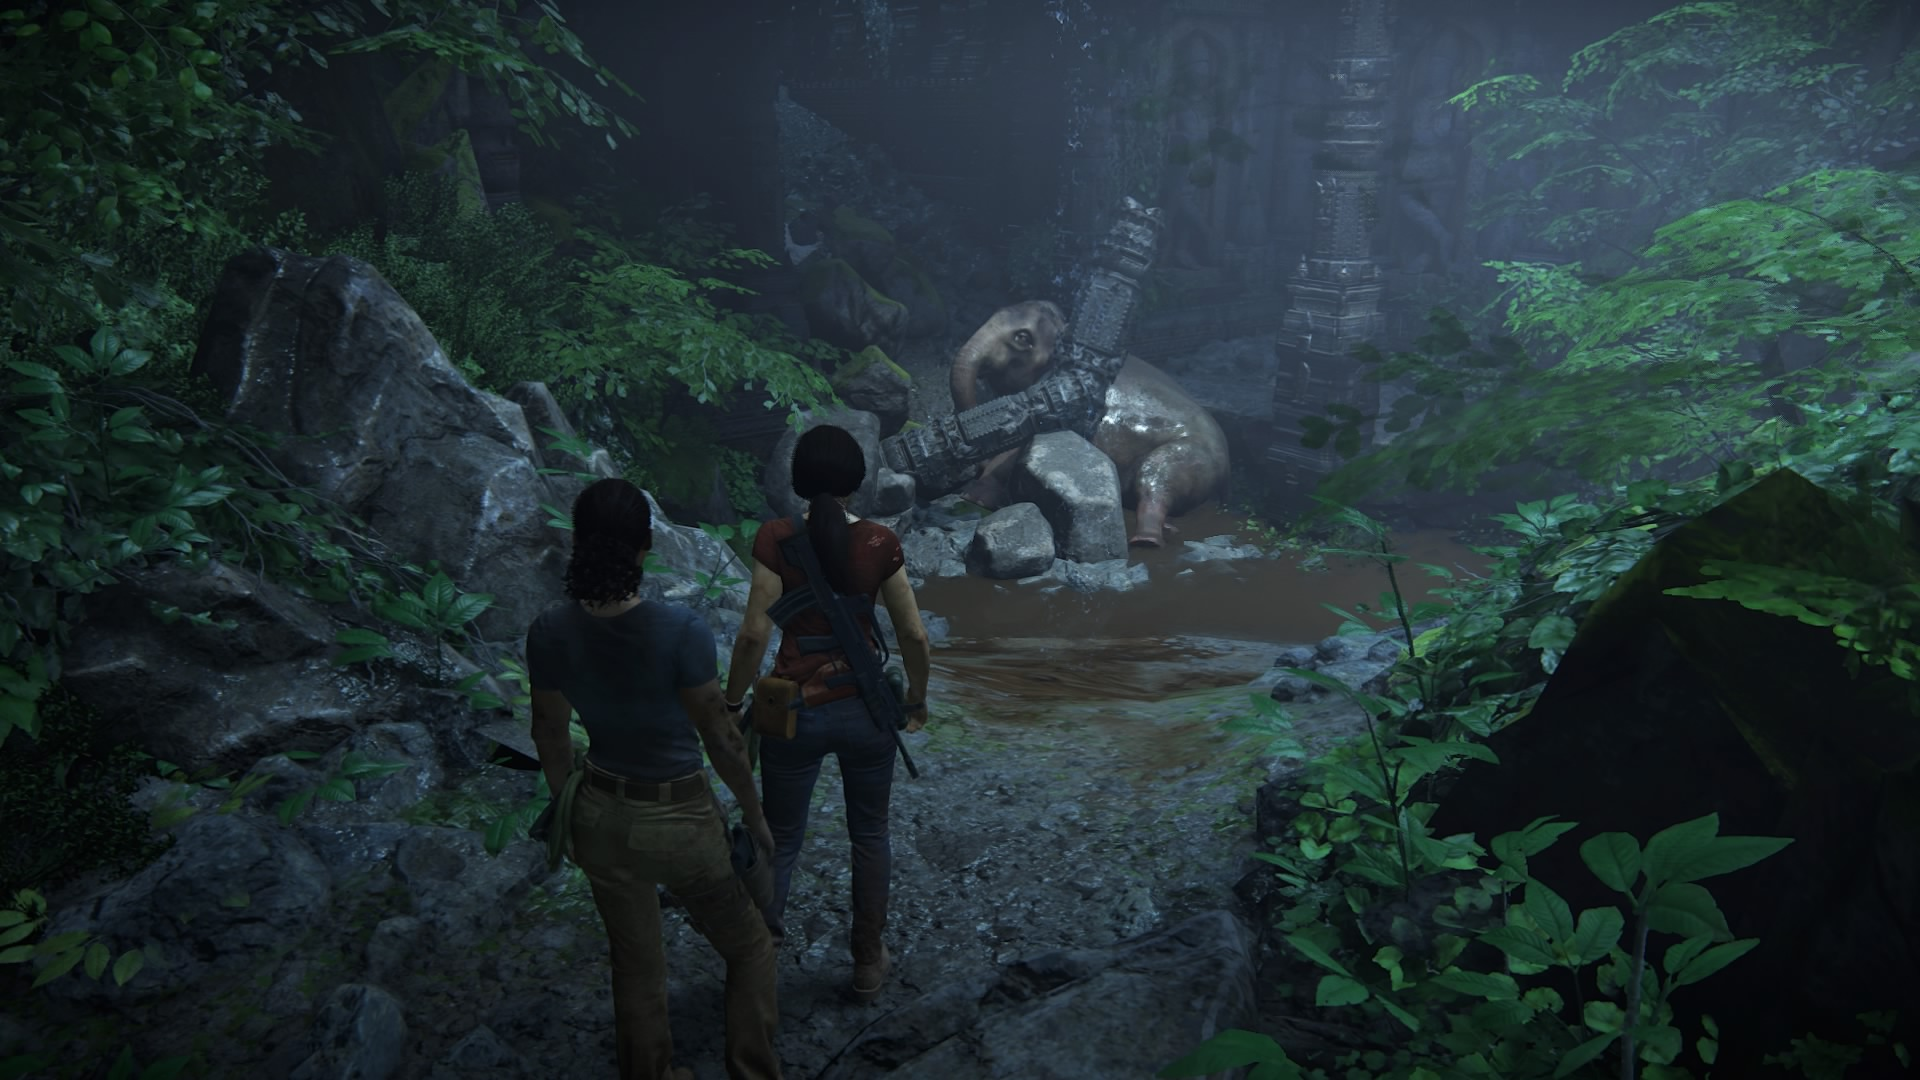 Uncharted™_ Утраченное наследие_20170826135332.jpg - Uncharted: The Lost Legacy